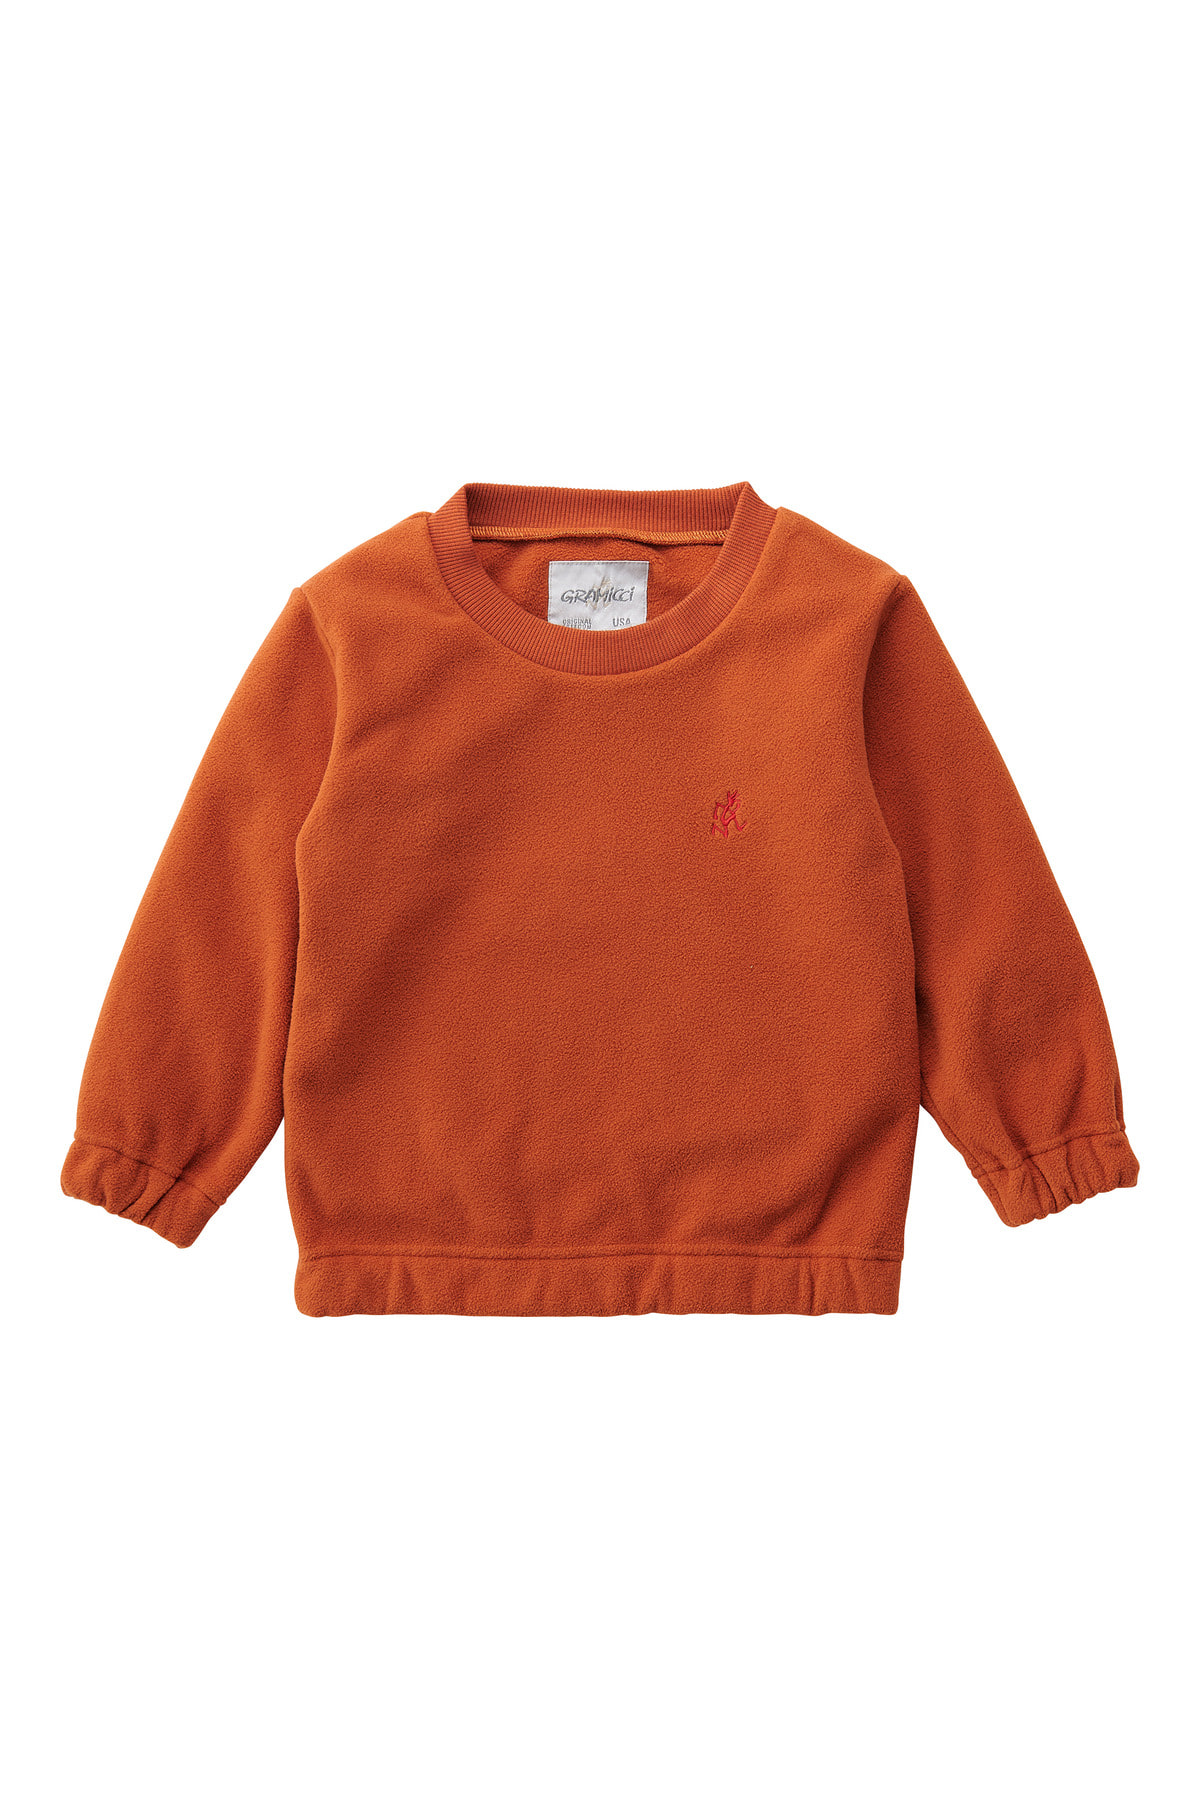 KIDS FLEECE CREW NECK ORANGE